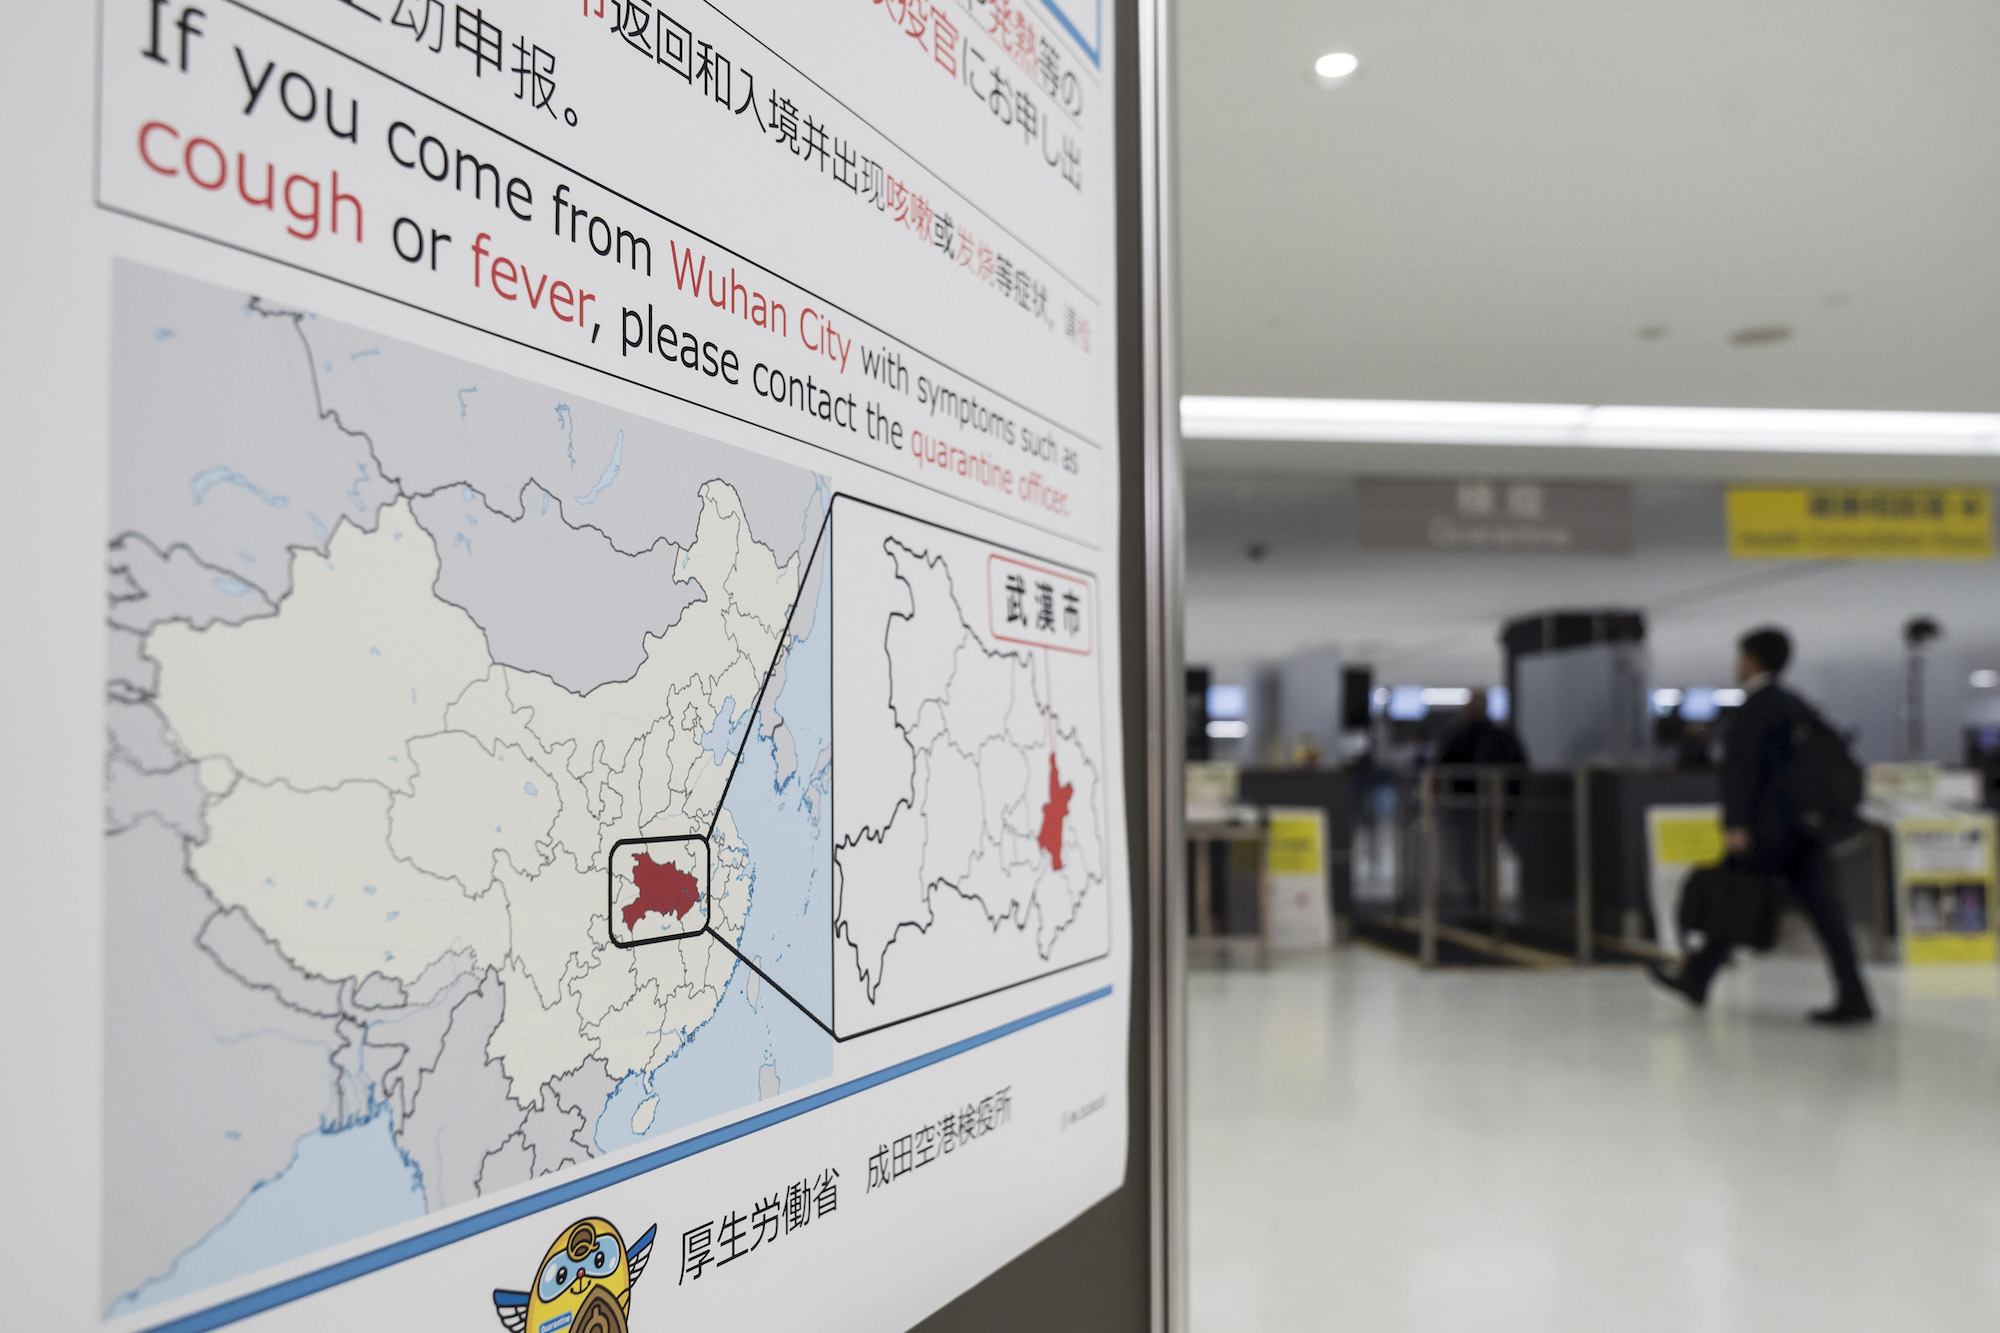 Poster of Wuhan quarantine instructions in an airport in Japan